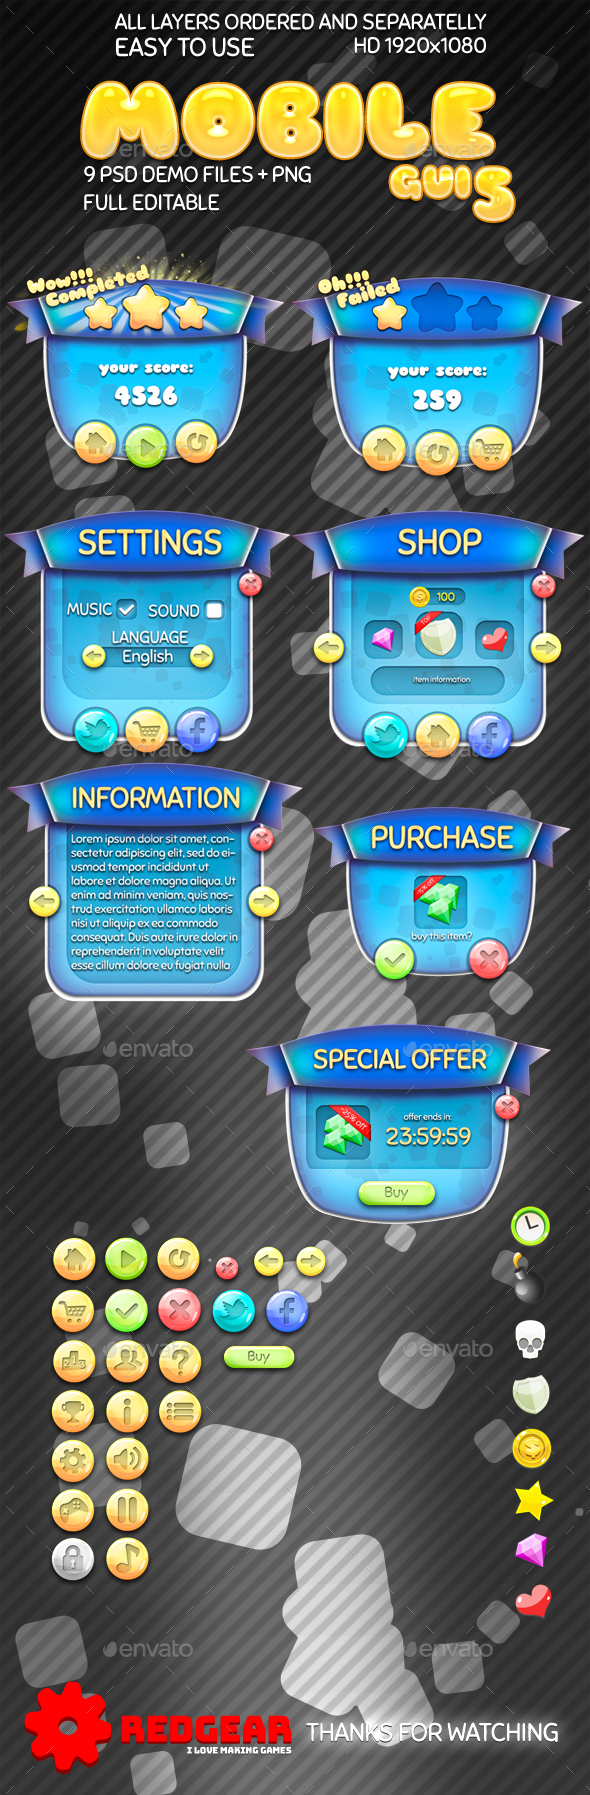 Mobile Game UI Pack #5